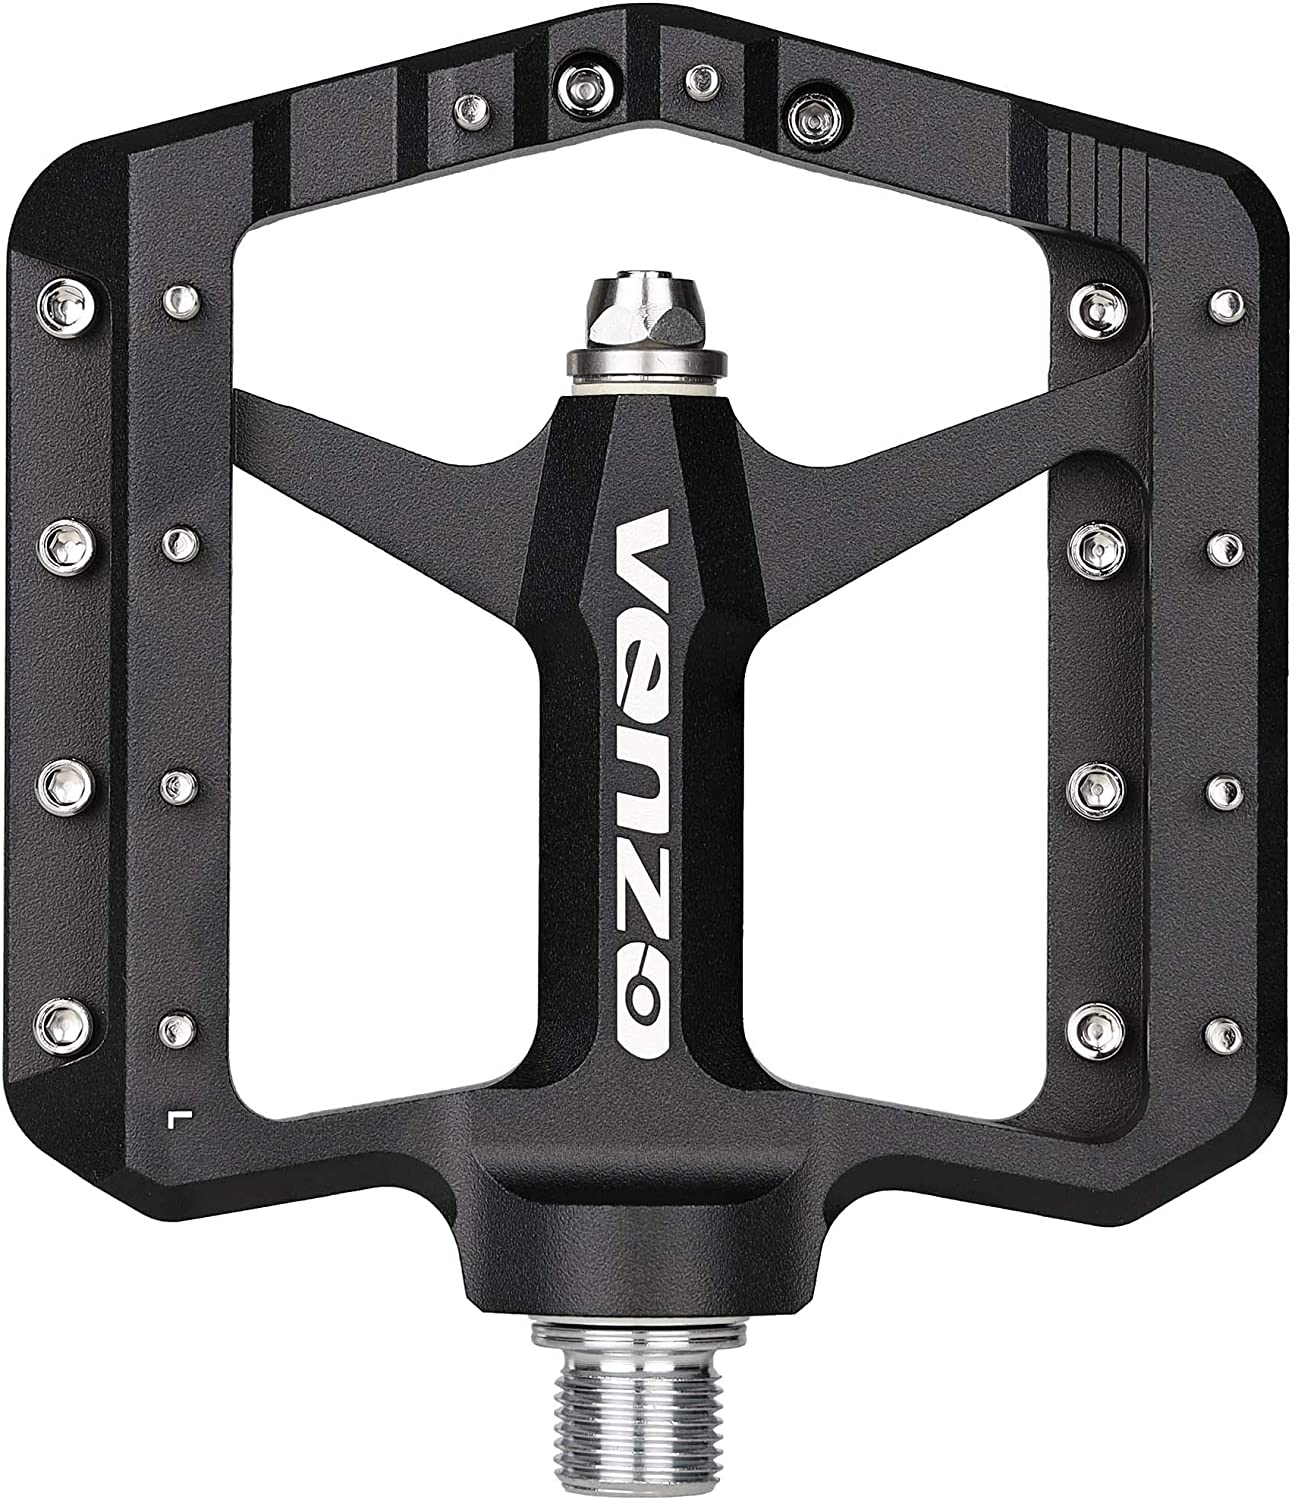 """Venzo Flat Mountain BMX MTB CNC Bike Sealed Oversized Bearing Pedals - Large Bicycle Platform -98mm x 98mm- 15mm Thickness - Pedals 9/16"""" with Anti-Skid Anti-Slip Nail - Downhill"""